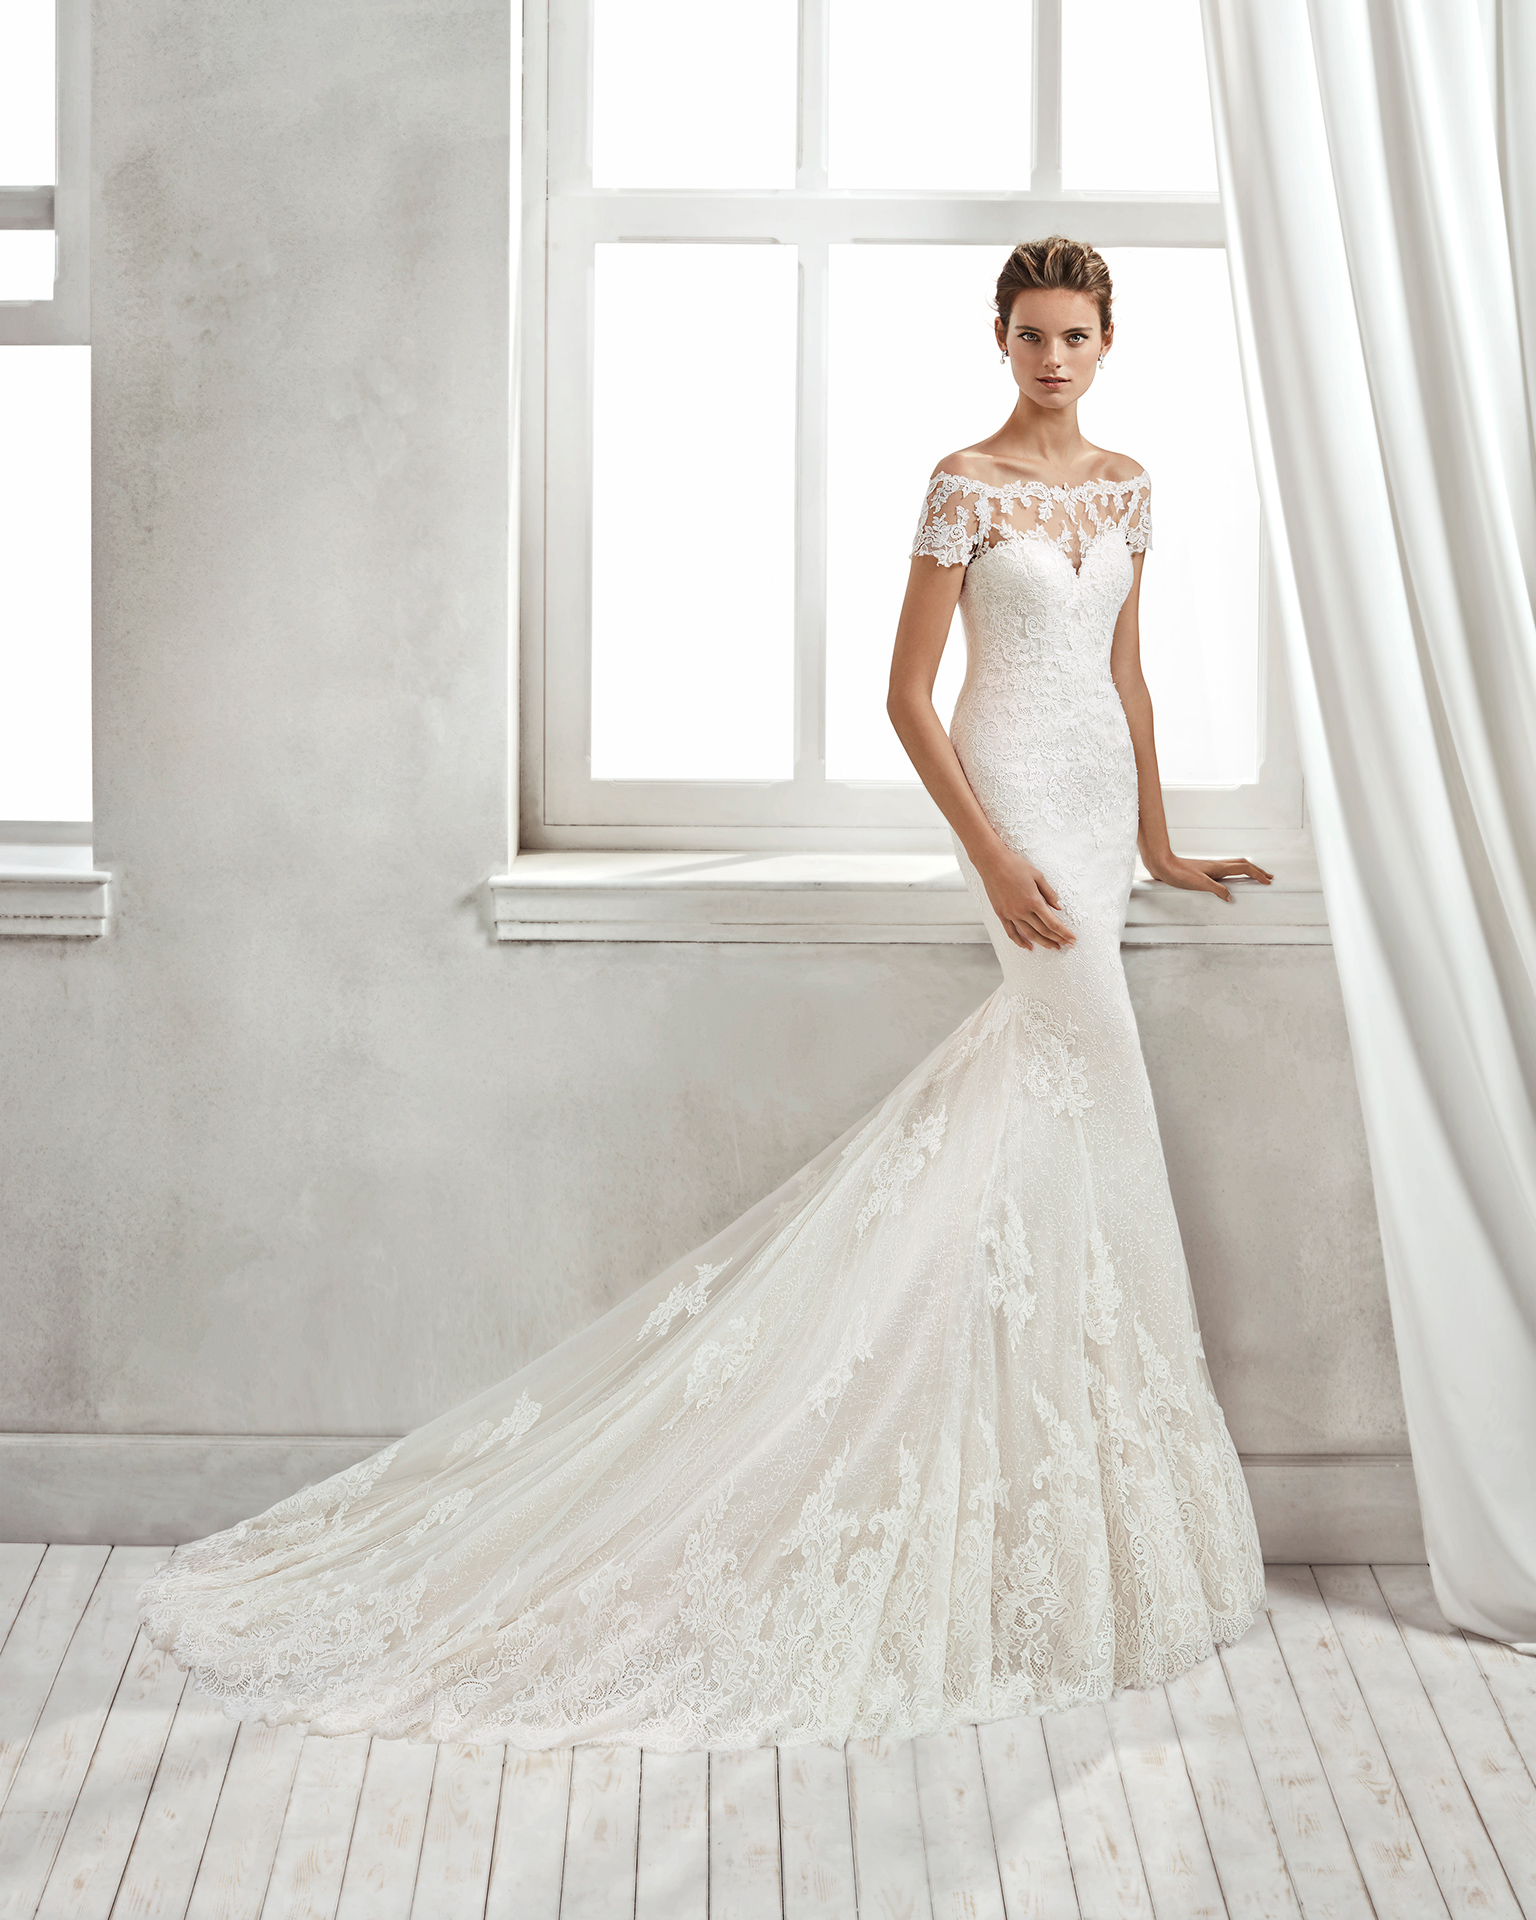 Mermaid-style lace wedding dress with off-the-shoulder neckline and lace appliqués, in nude and natural.